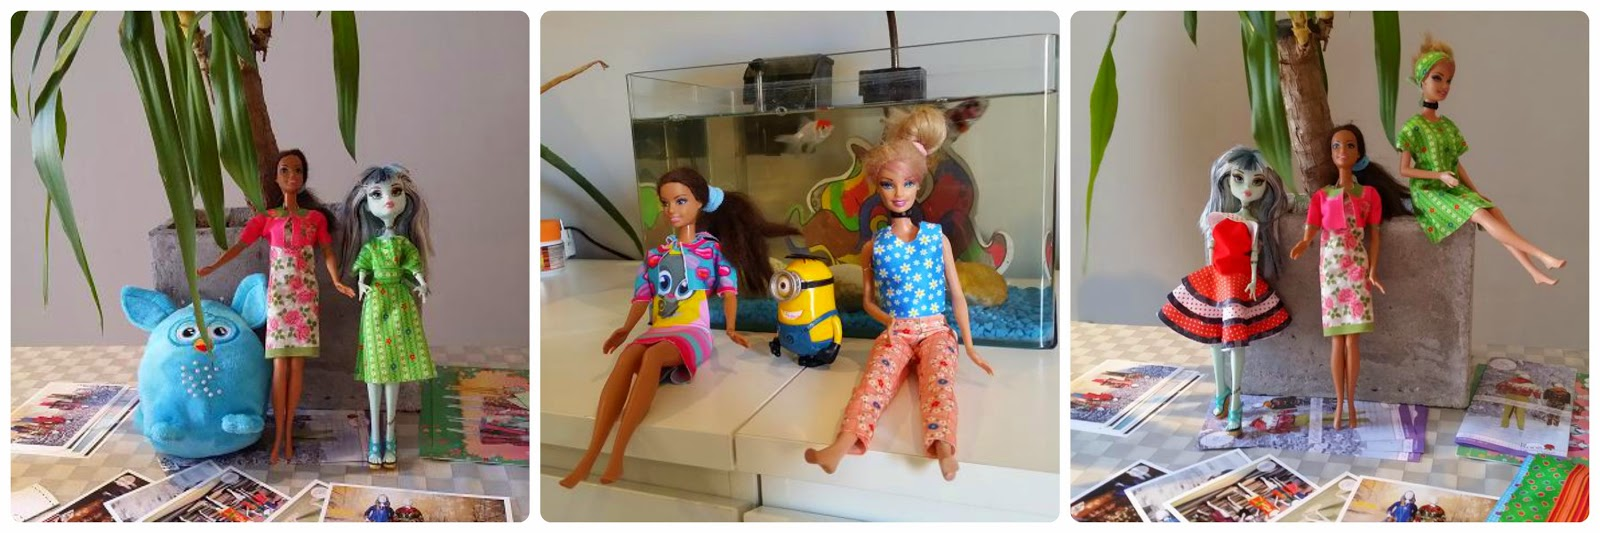 The dolls all look so stylish in their outfits! (And Furby could join the photo shoot!)